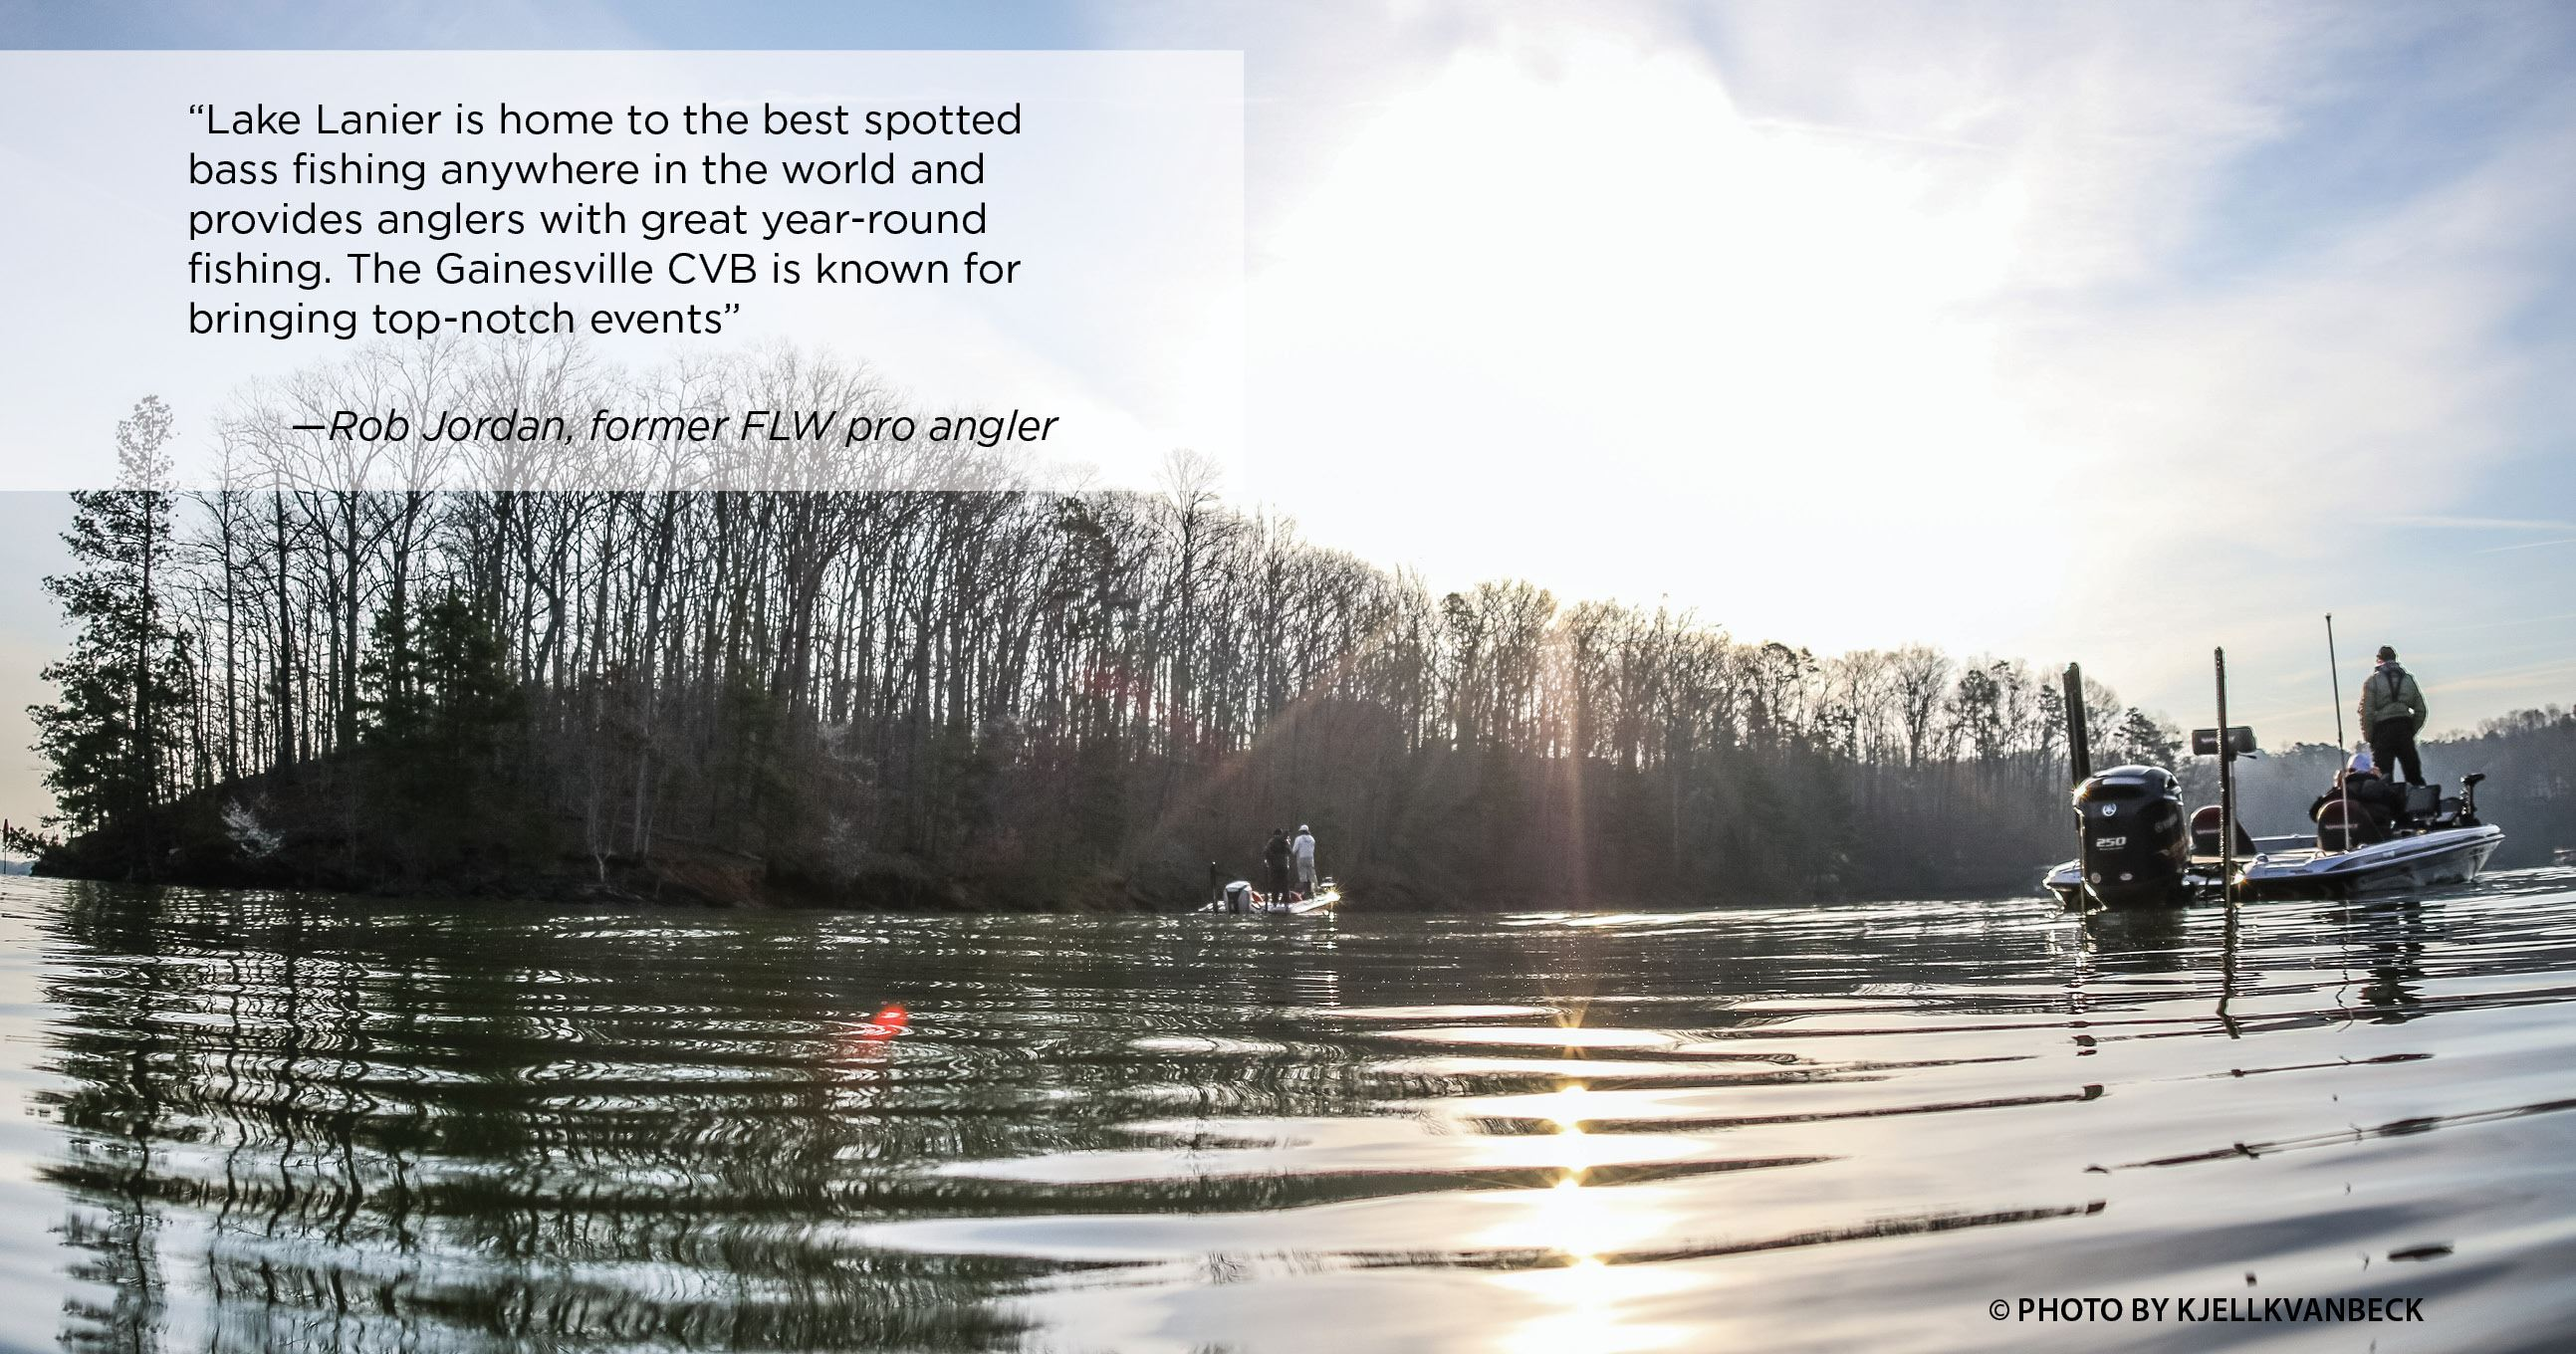 Tournament Fishing and quote from Rob Jordan